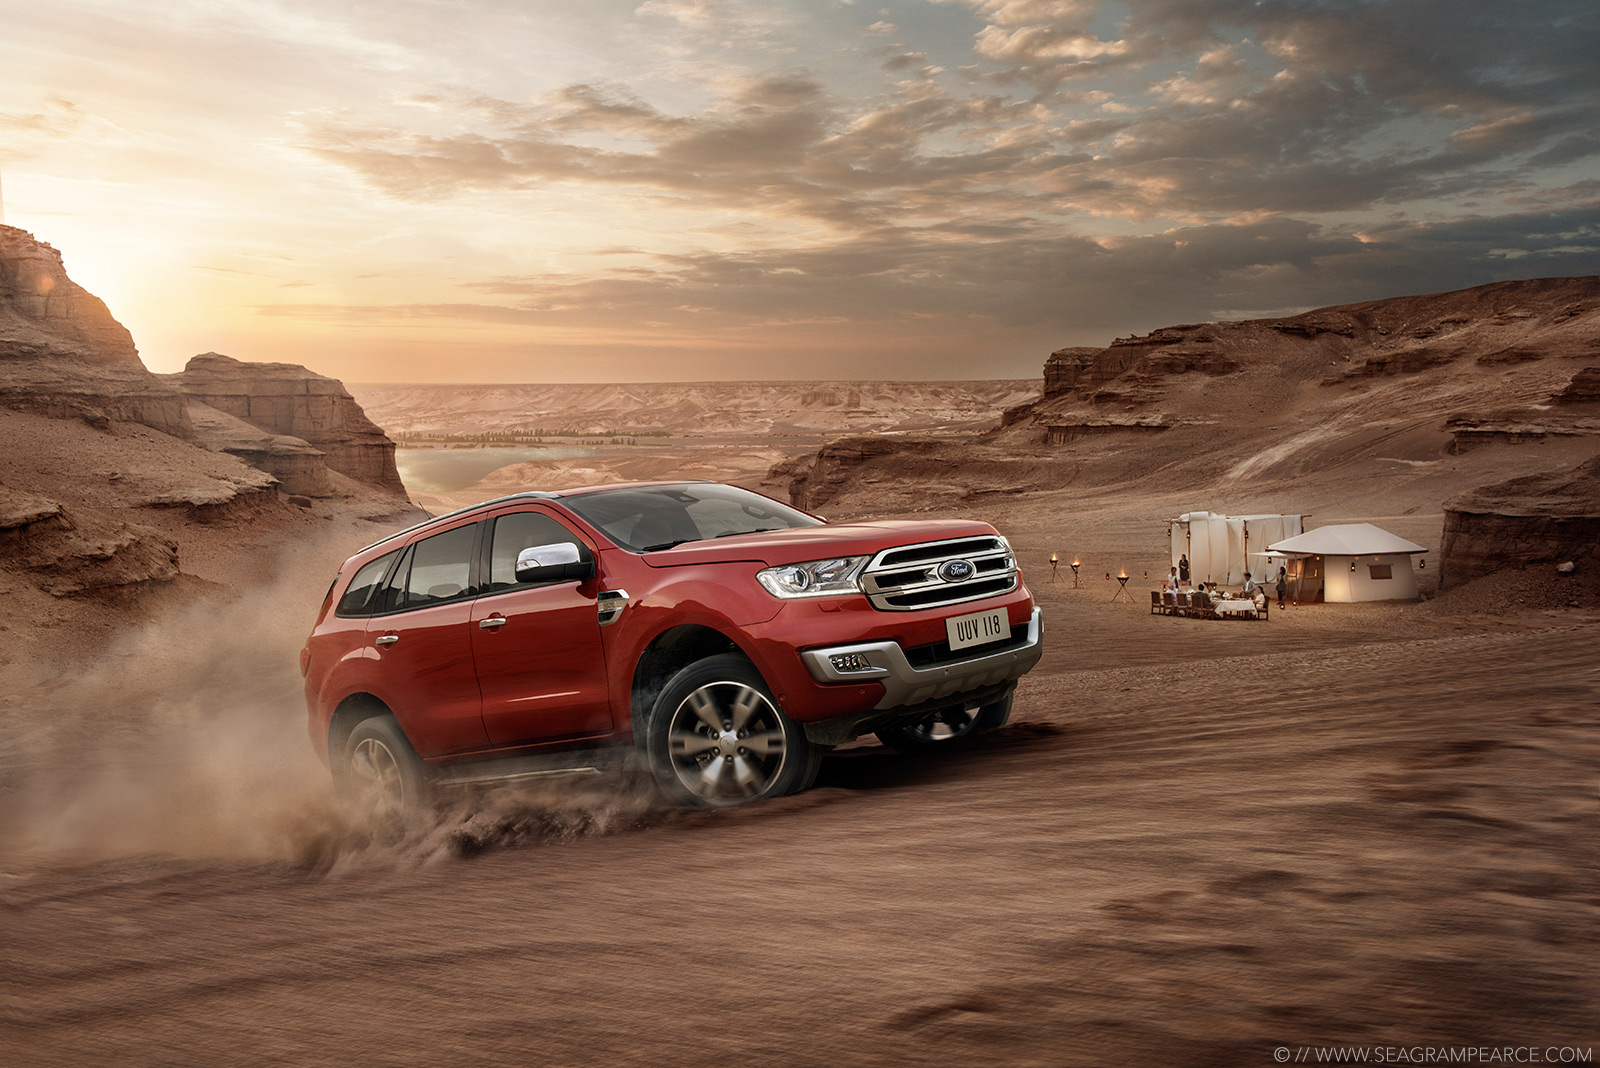 Ford | Everest Desert Camping | Seagram Pearce Photography